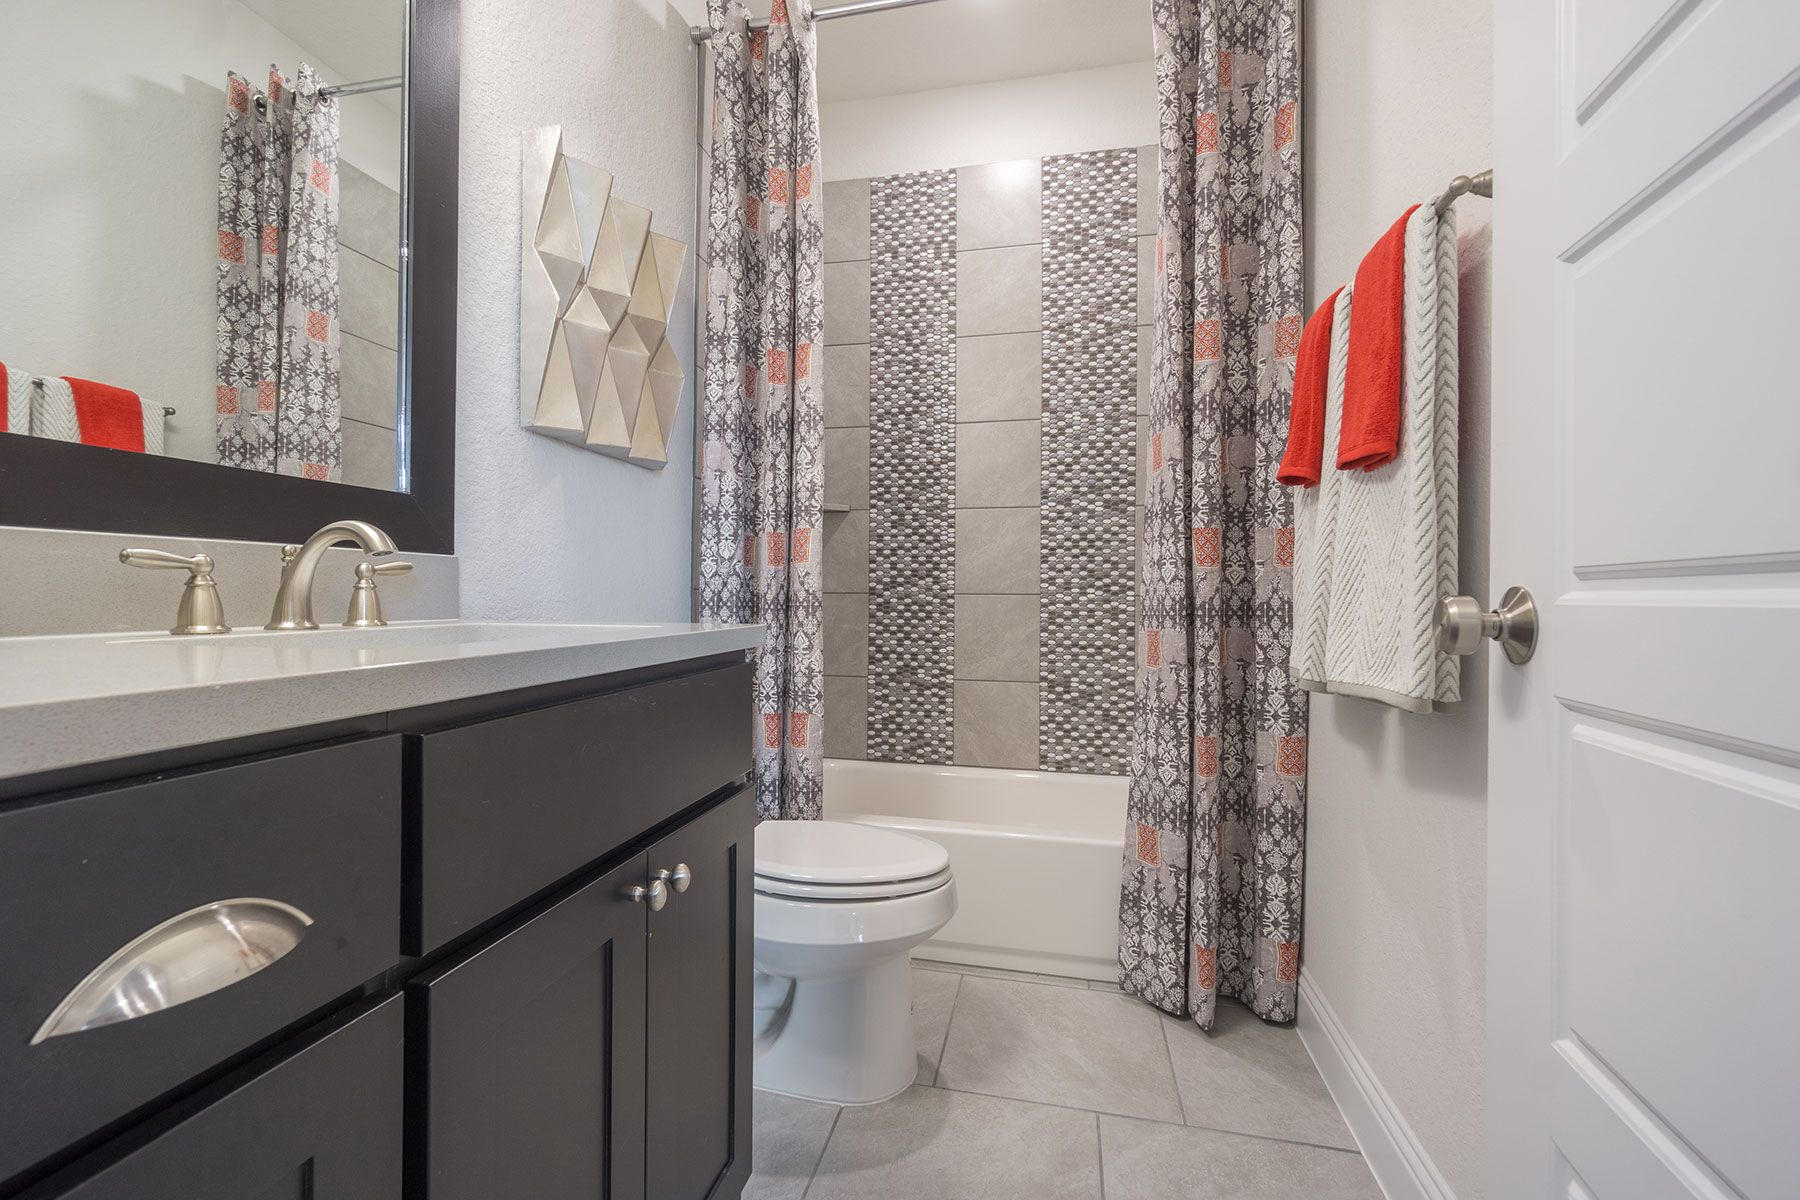 Bathroom featured in the Roseville By M/I Homes in Houston, TX